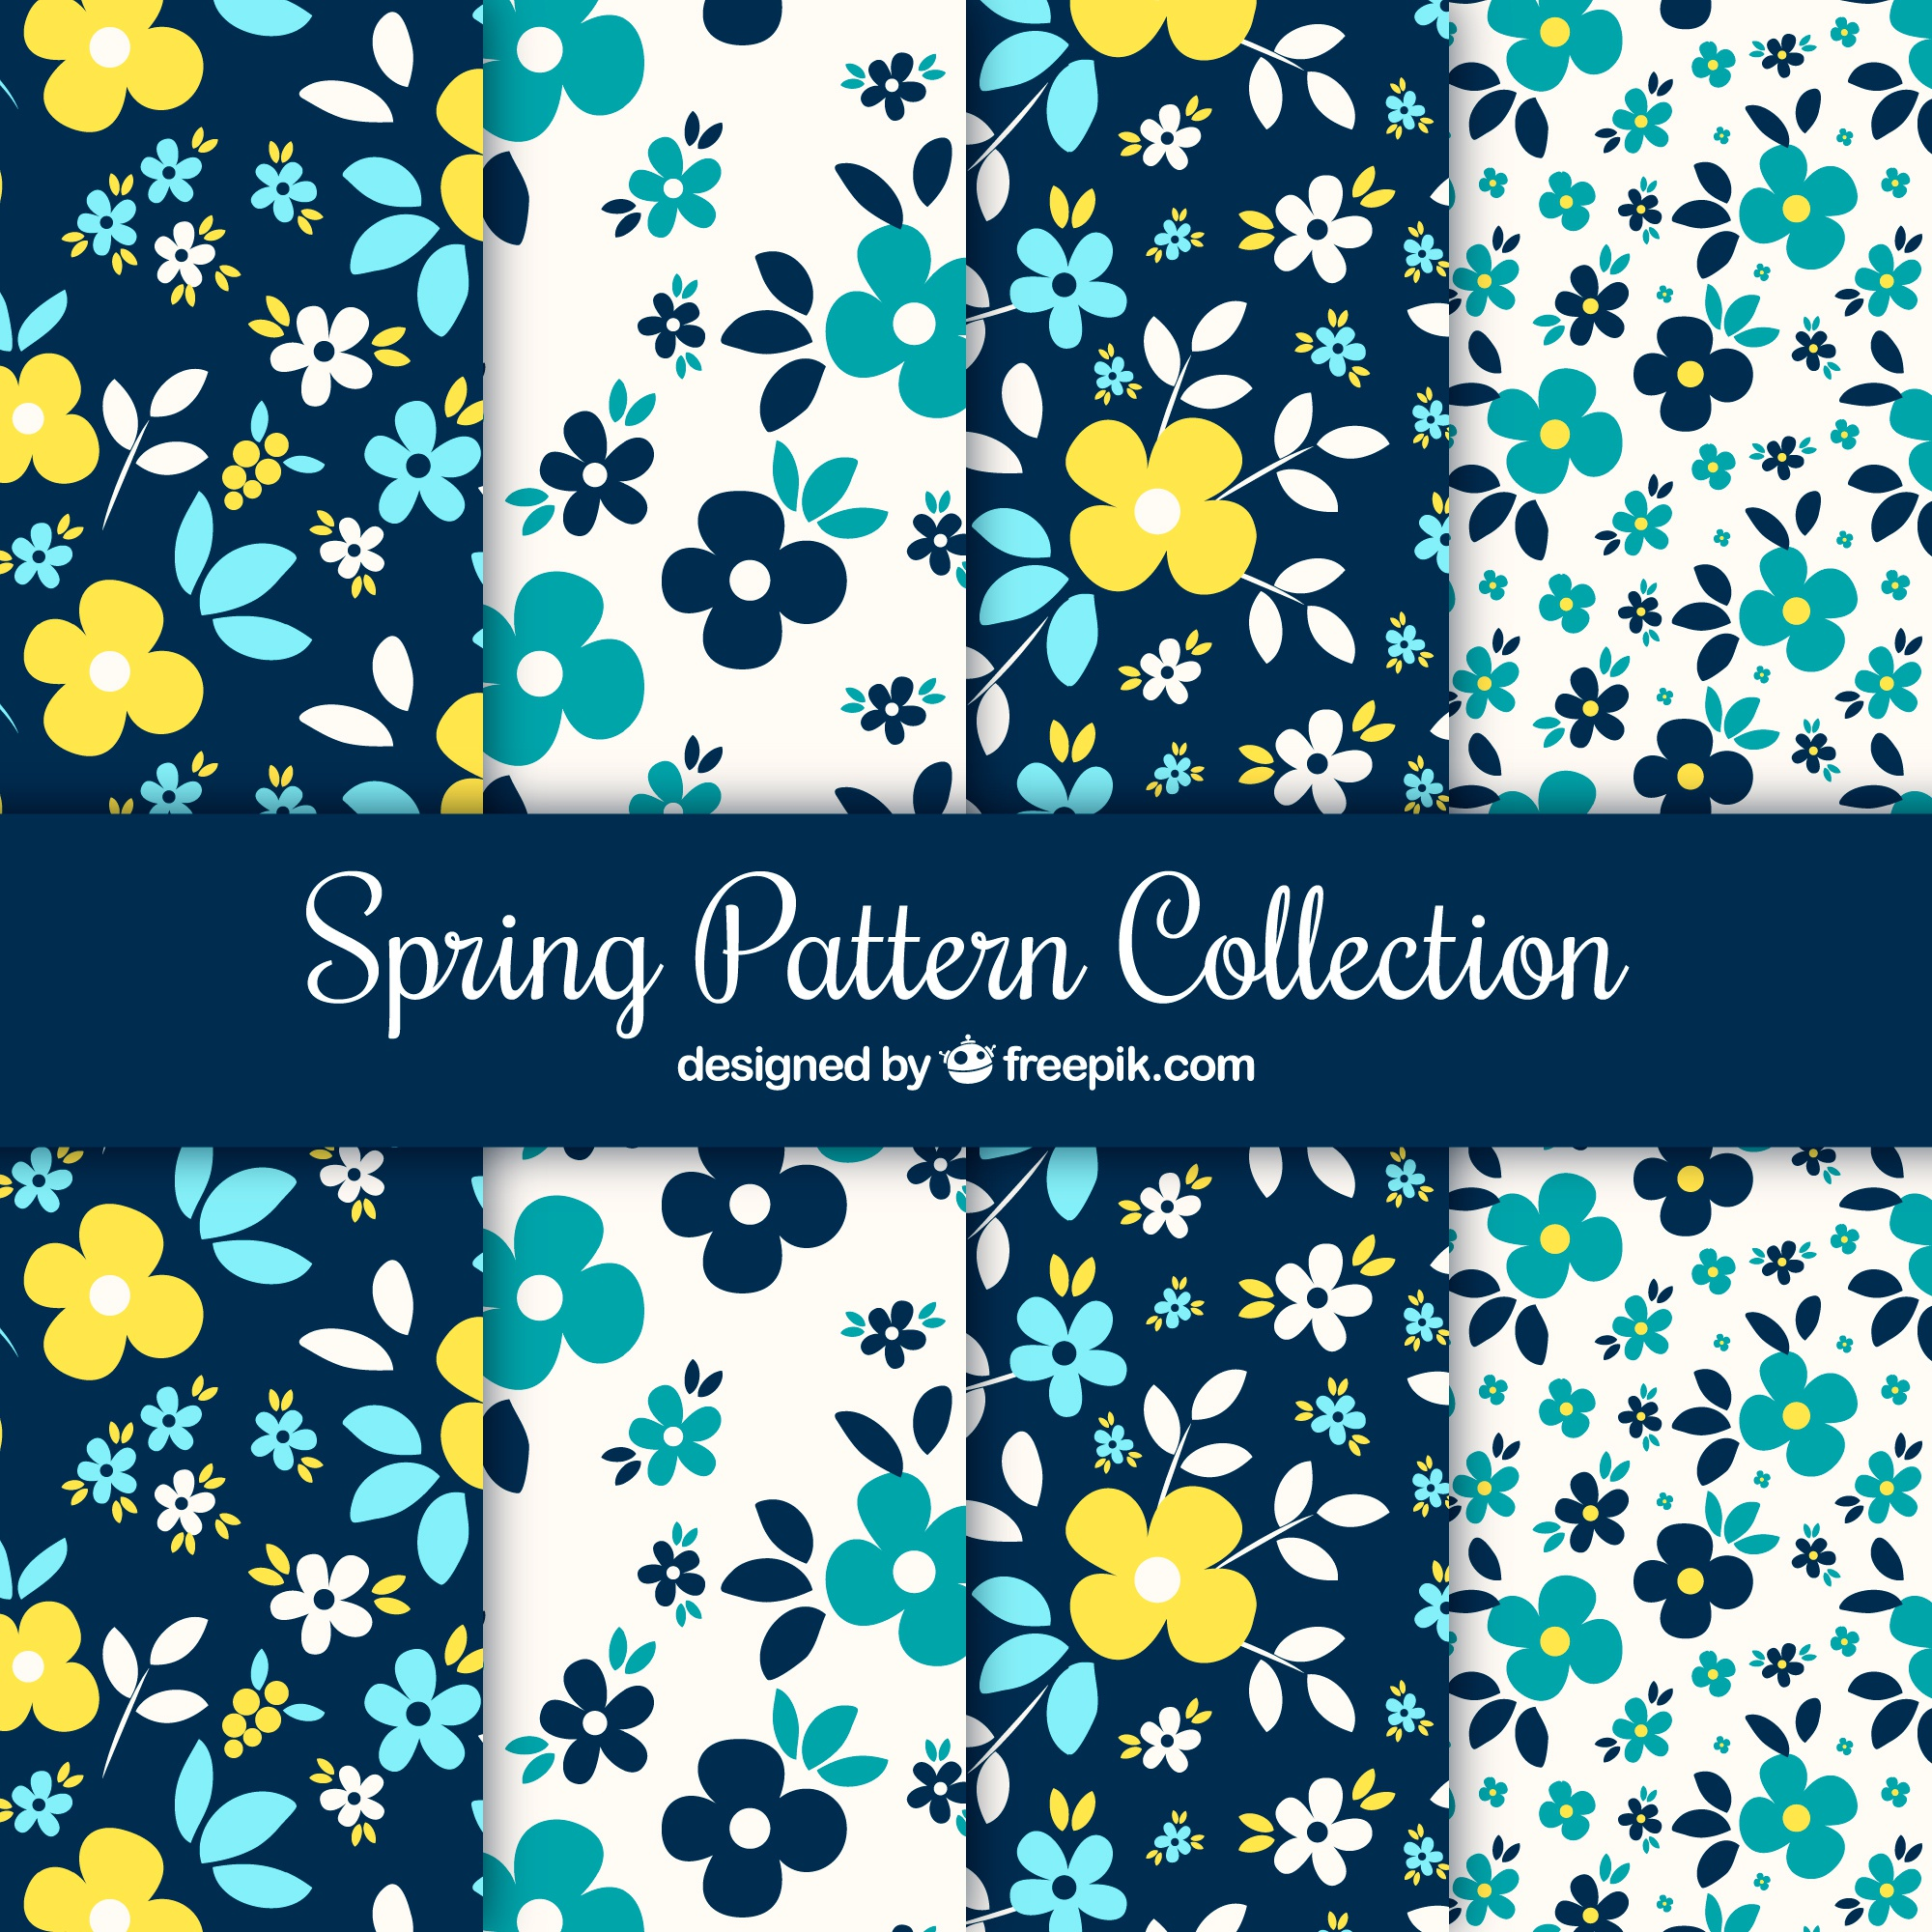 Set of spring patterns with blue and yellow flowers